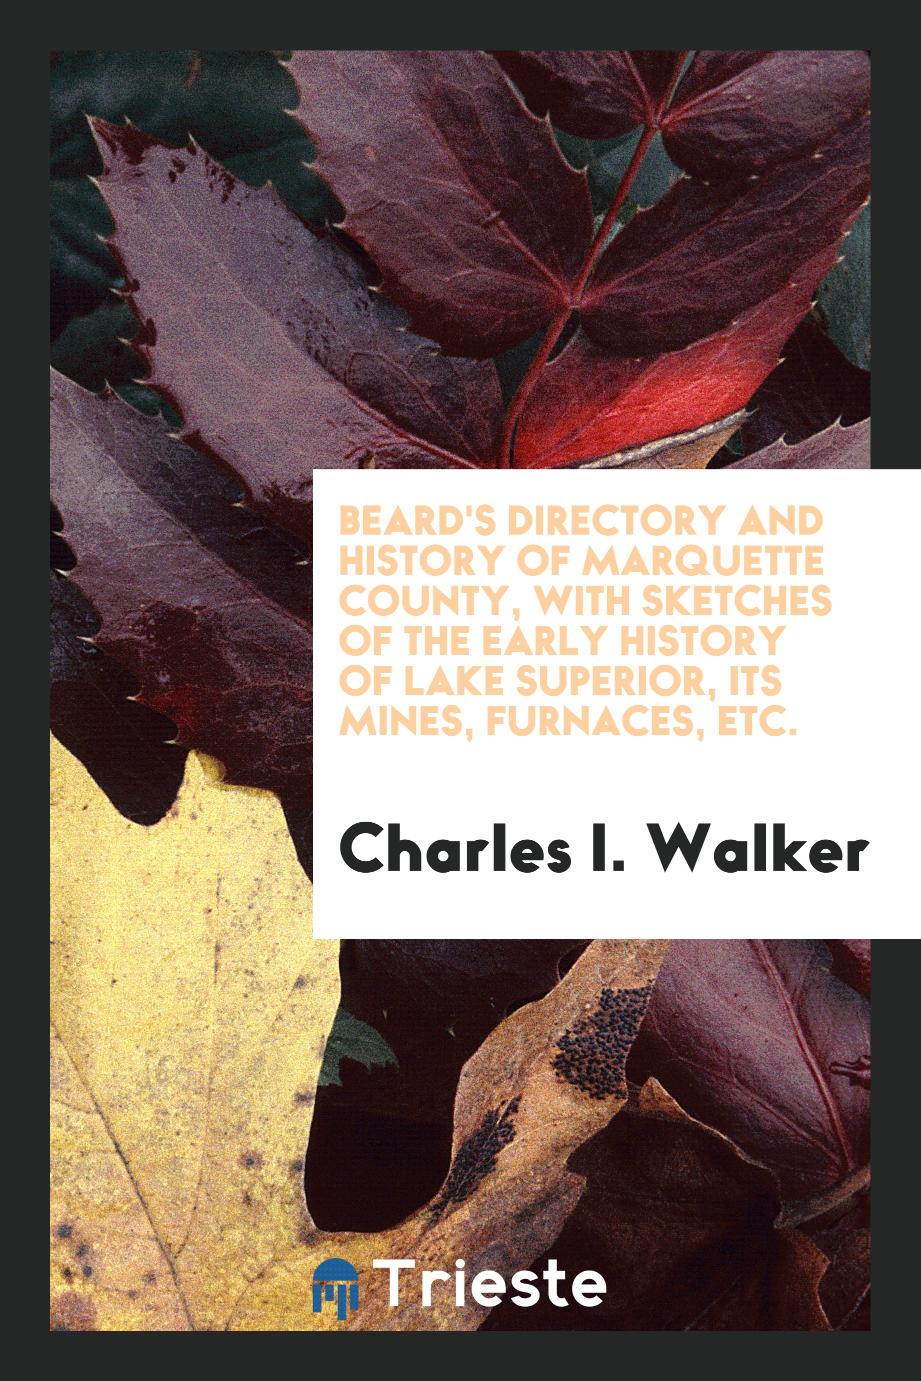 Beard's Directory and History of Marquette County, with Sketches of the Early History of Lake Superior, Its Mines, Furnaces, Etc.